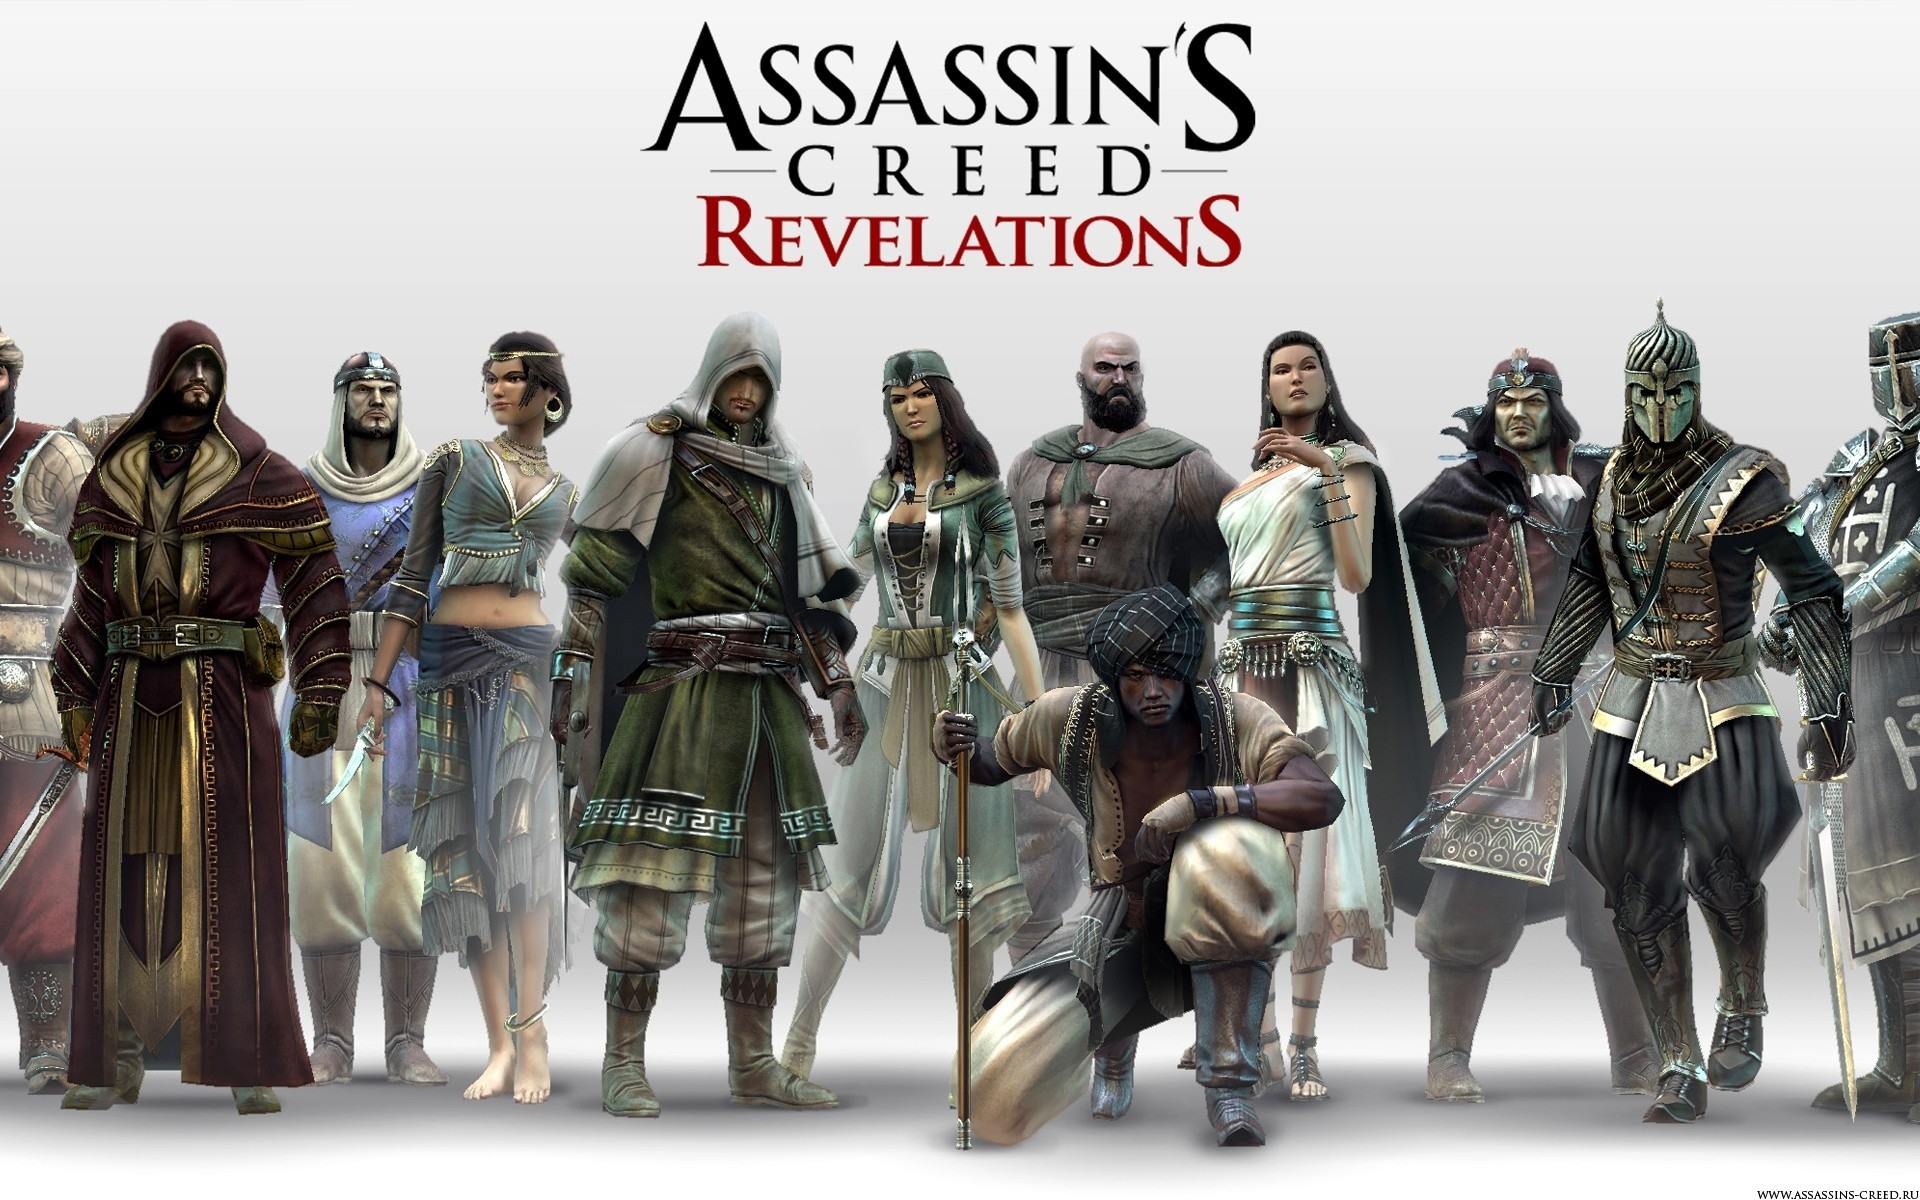 assassins creed revelations characters